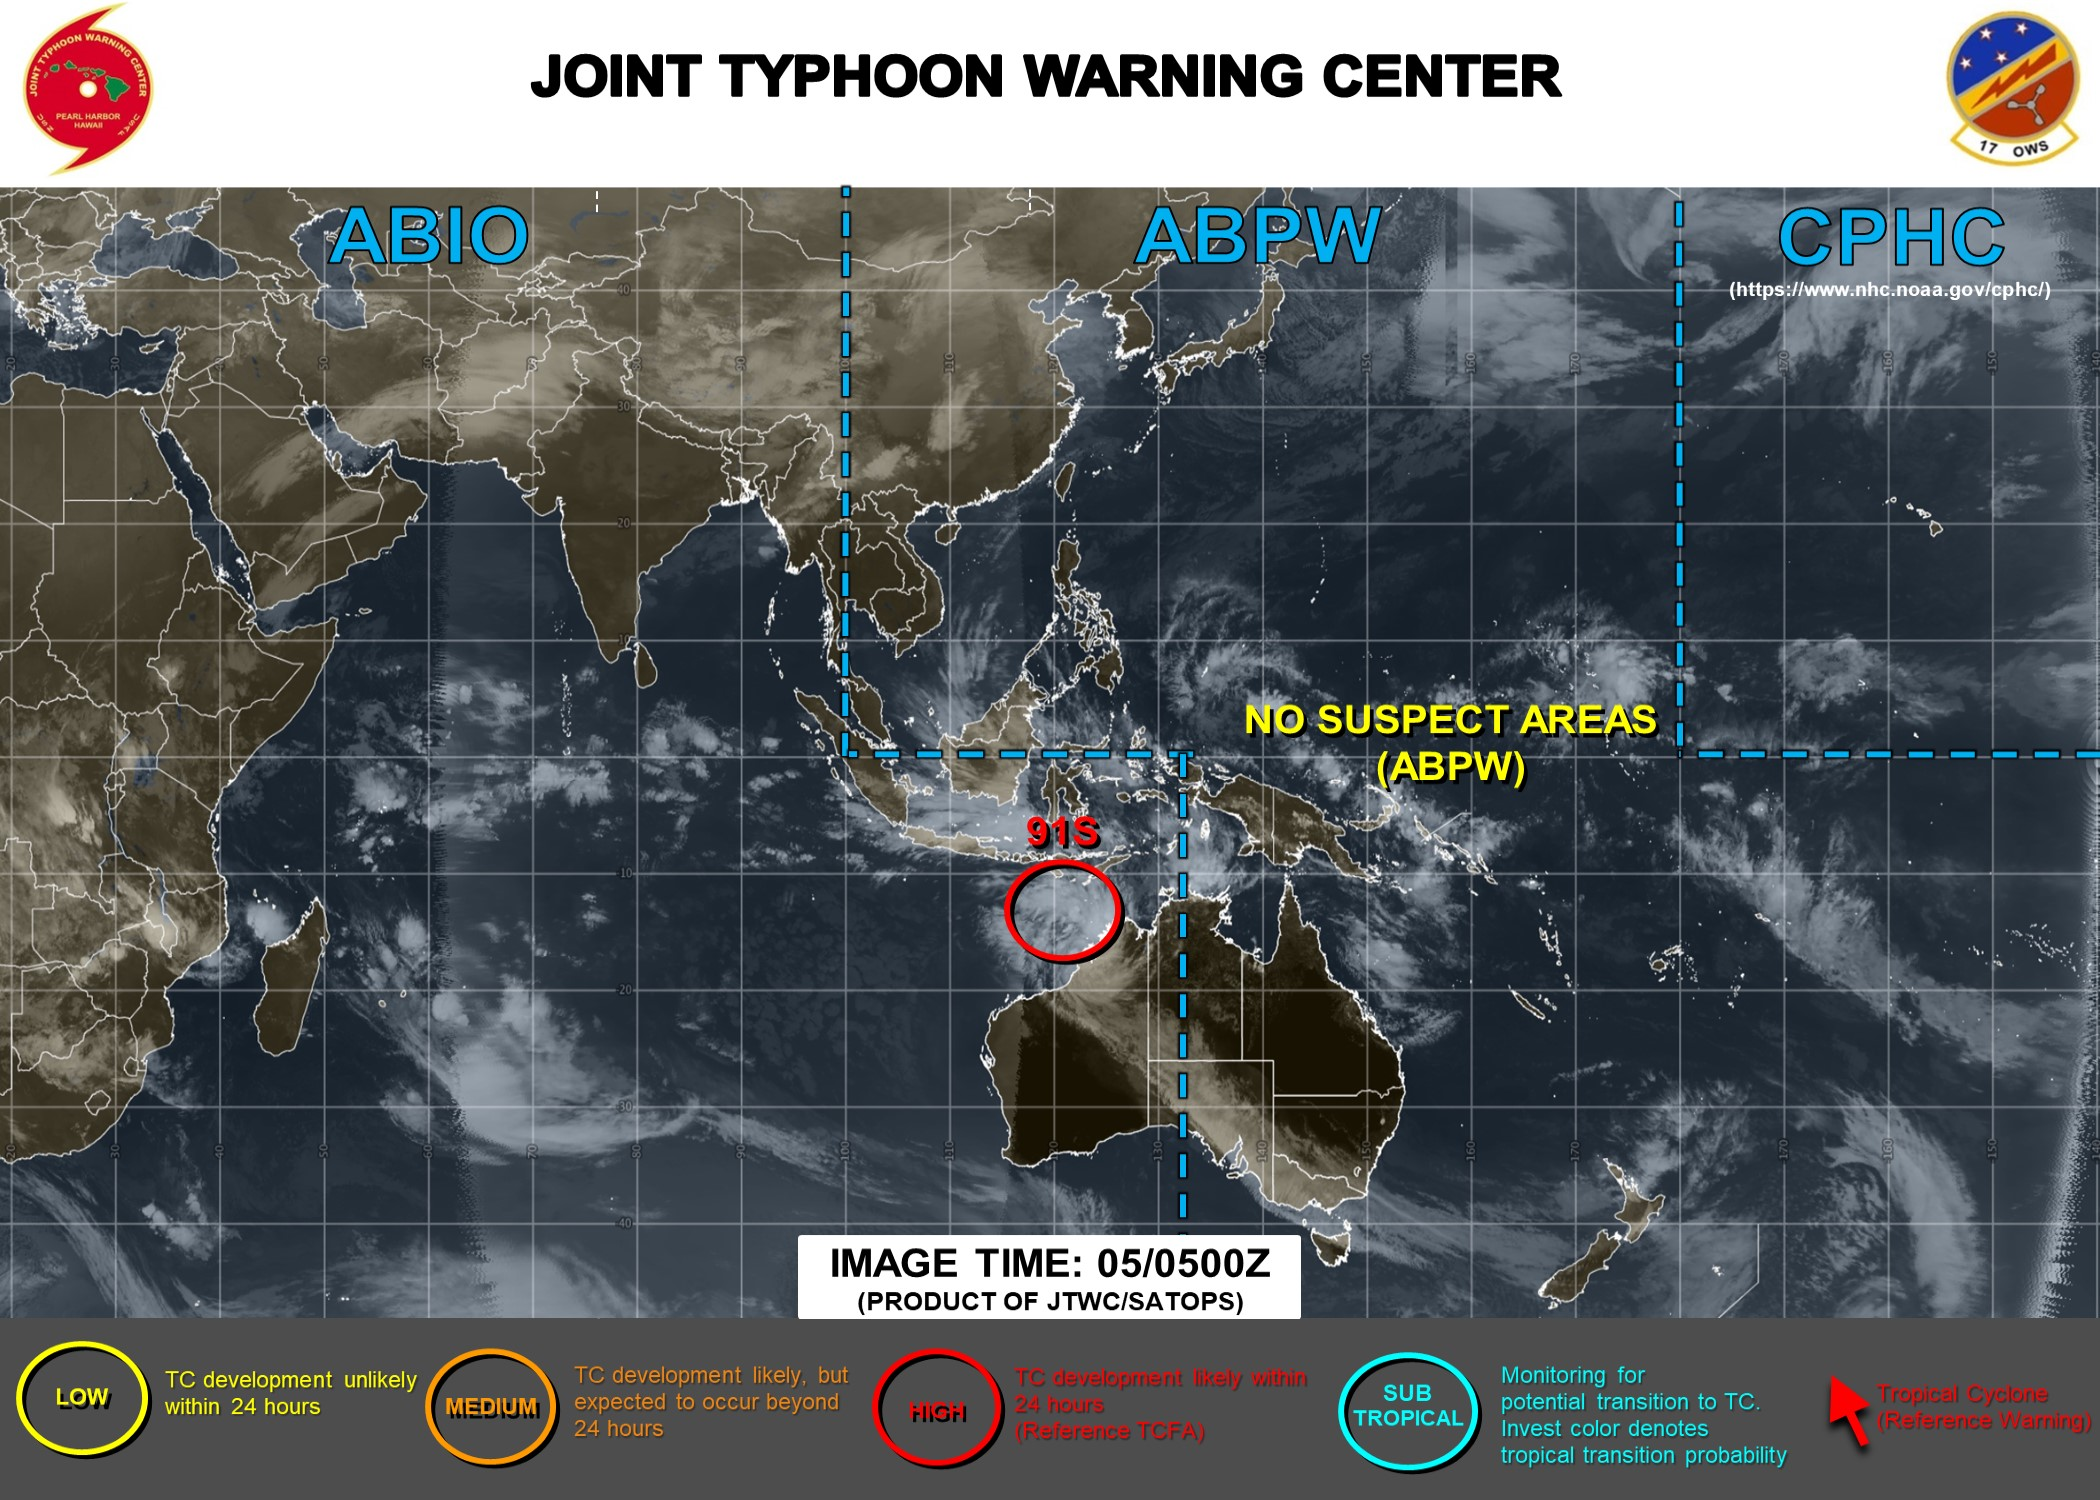 Western Australia: Invest 91S: Tropical Cyclone Formation Alert